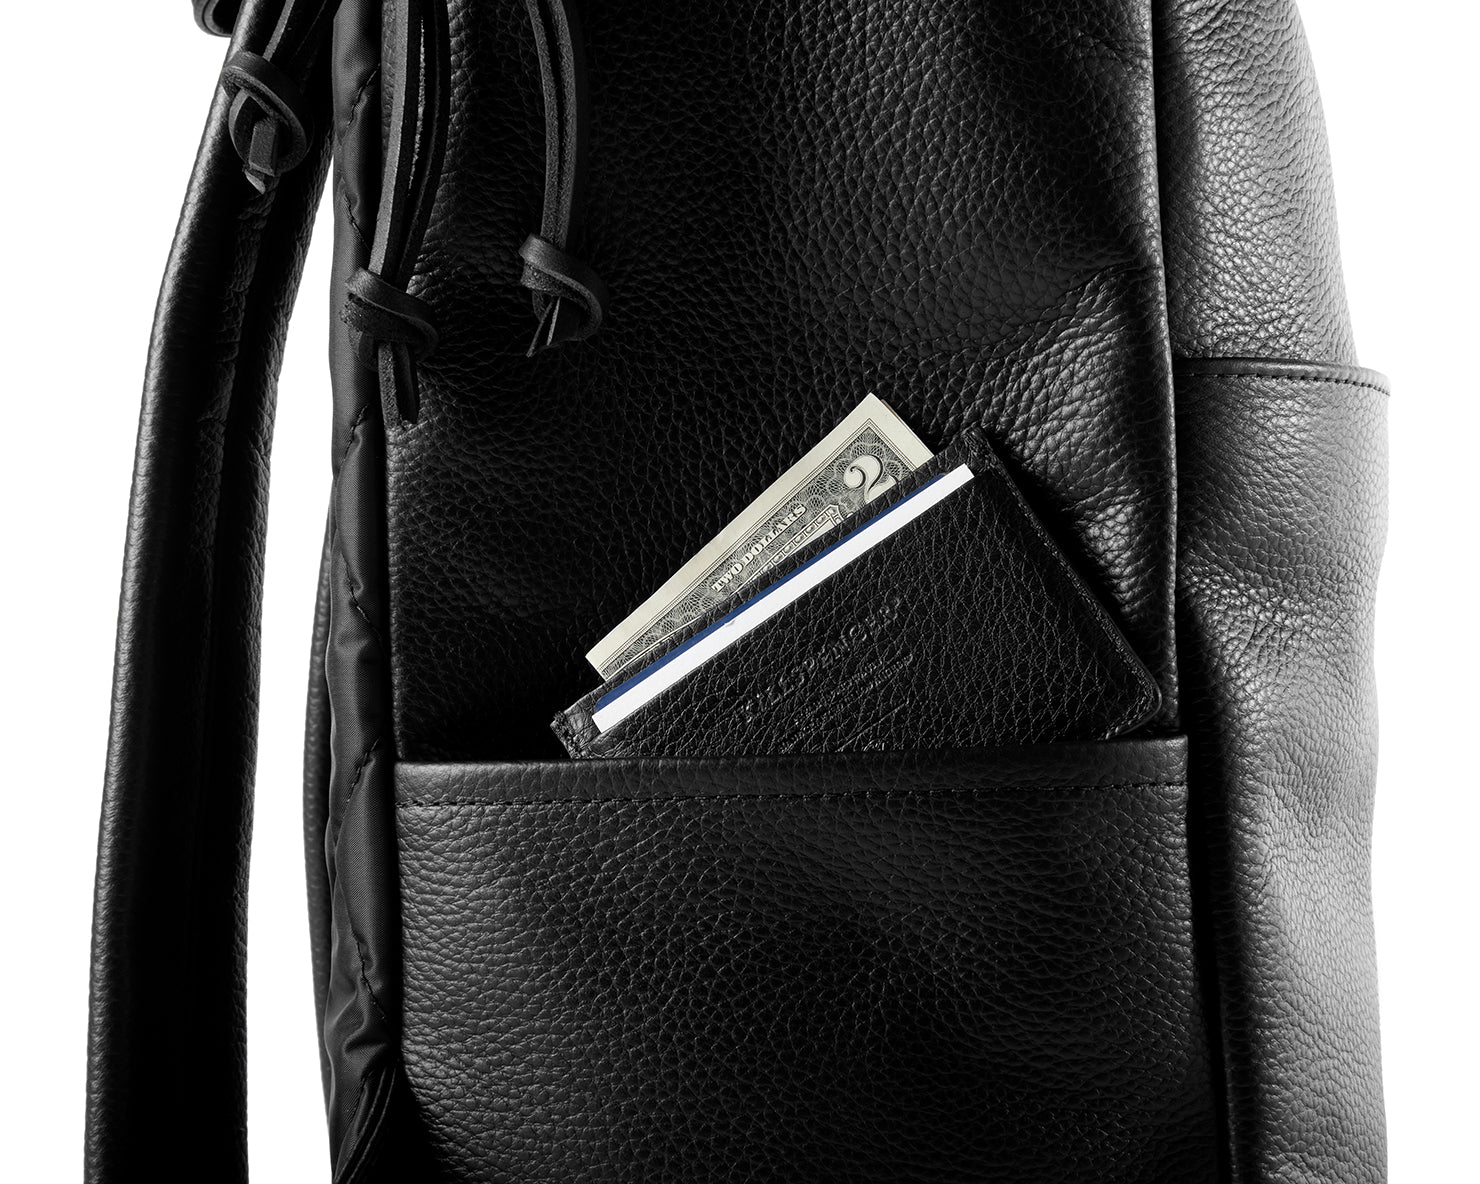 R-22 RUCKSACK | KILLSPENCER® - Black Leather